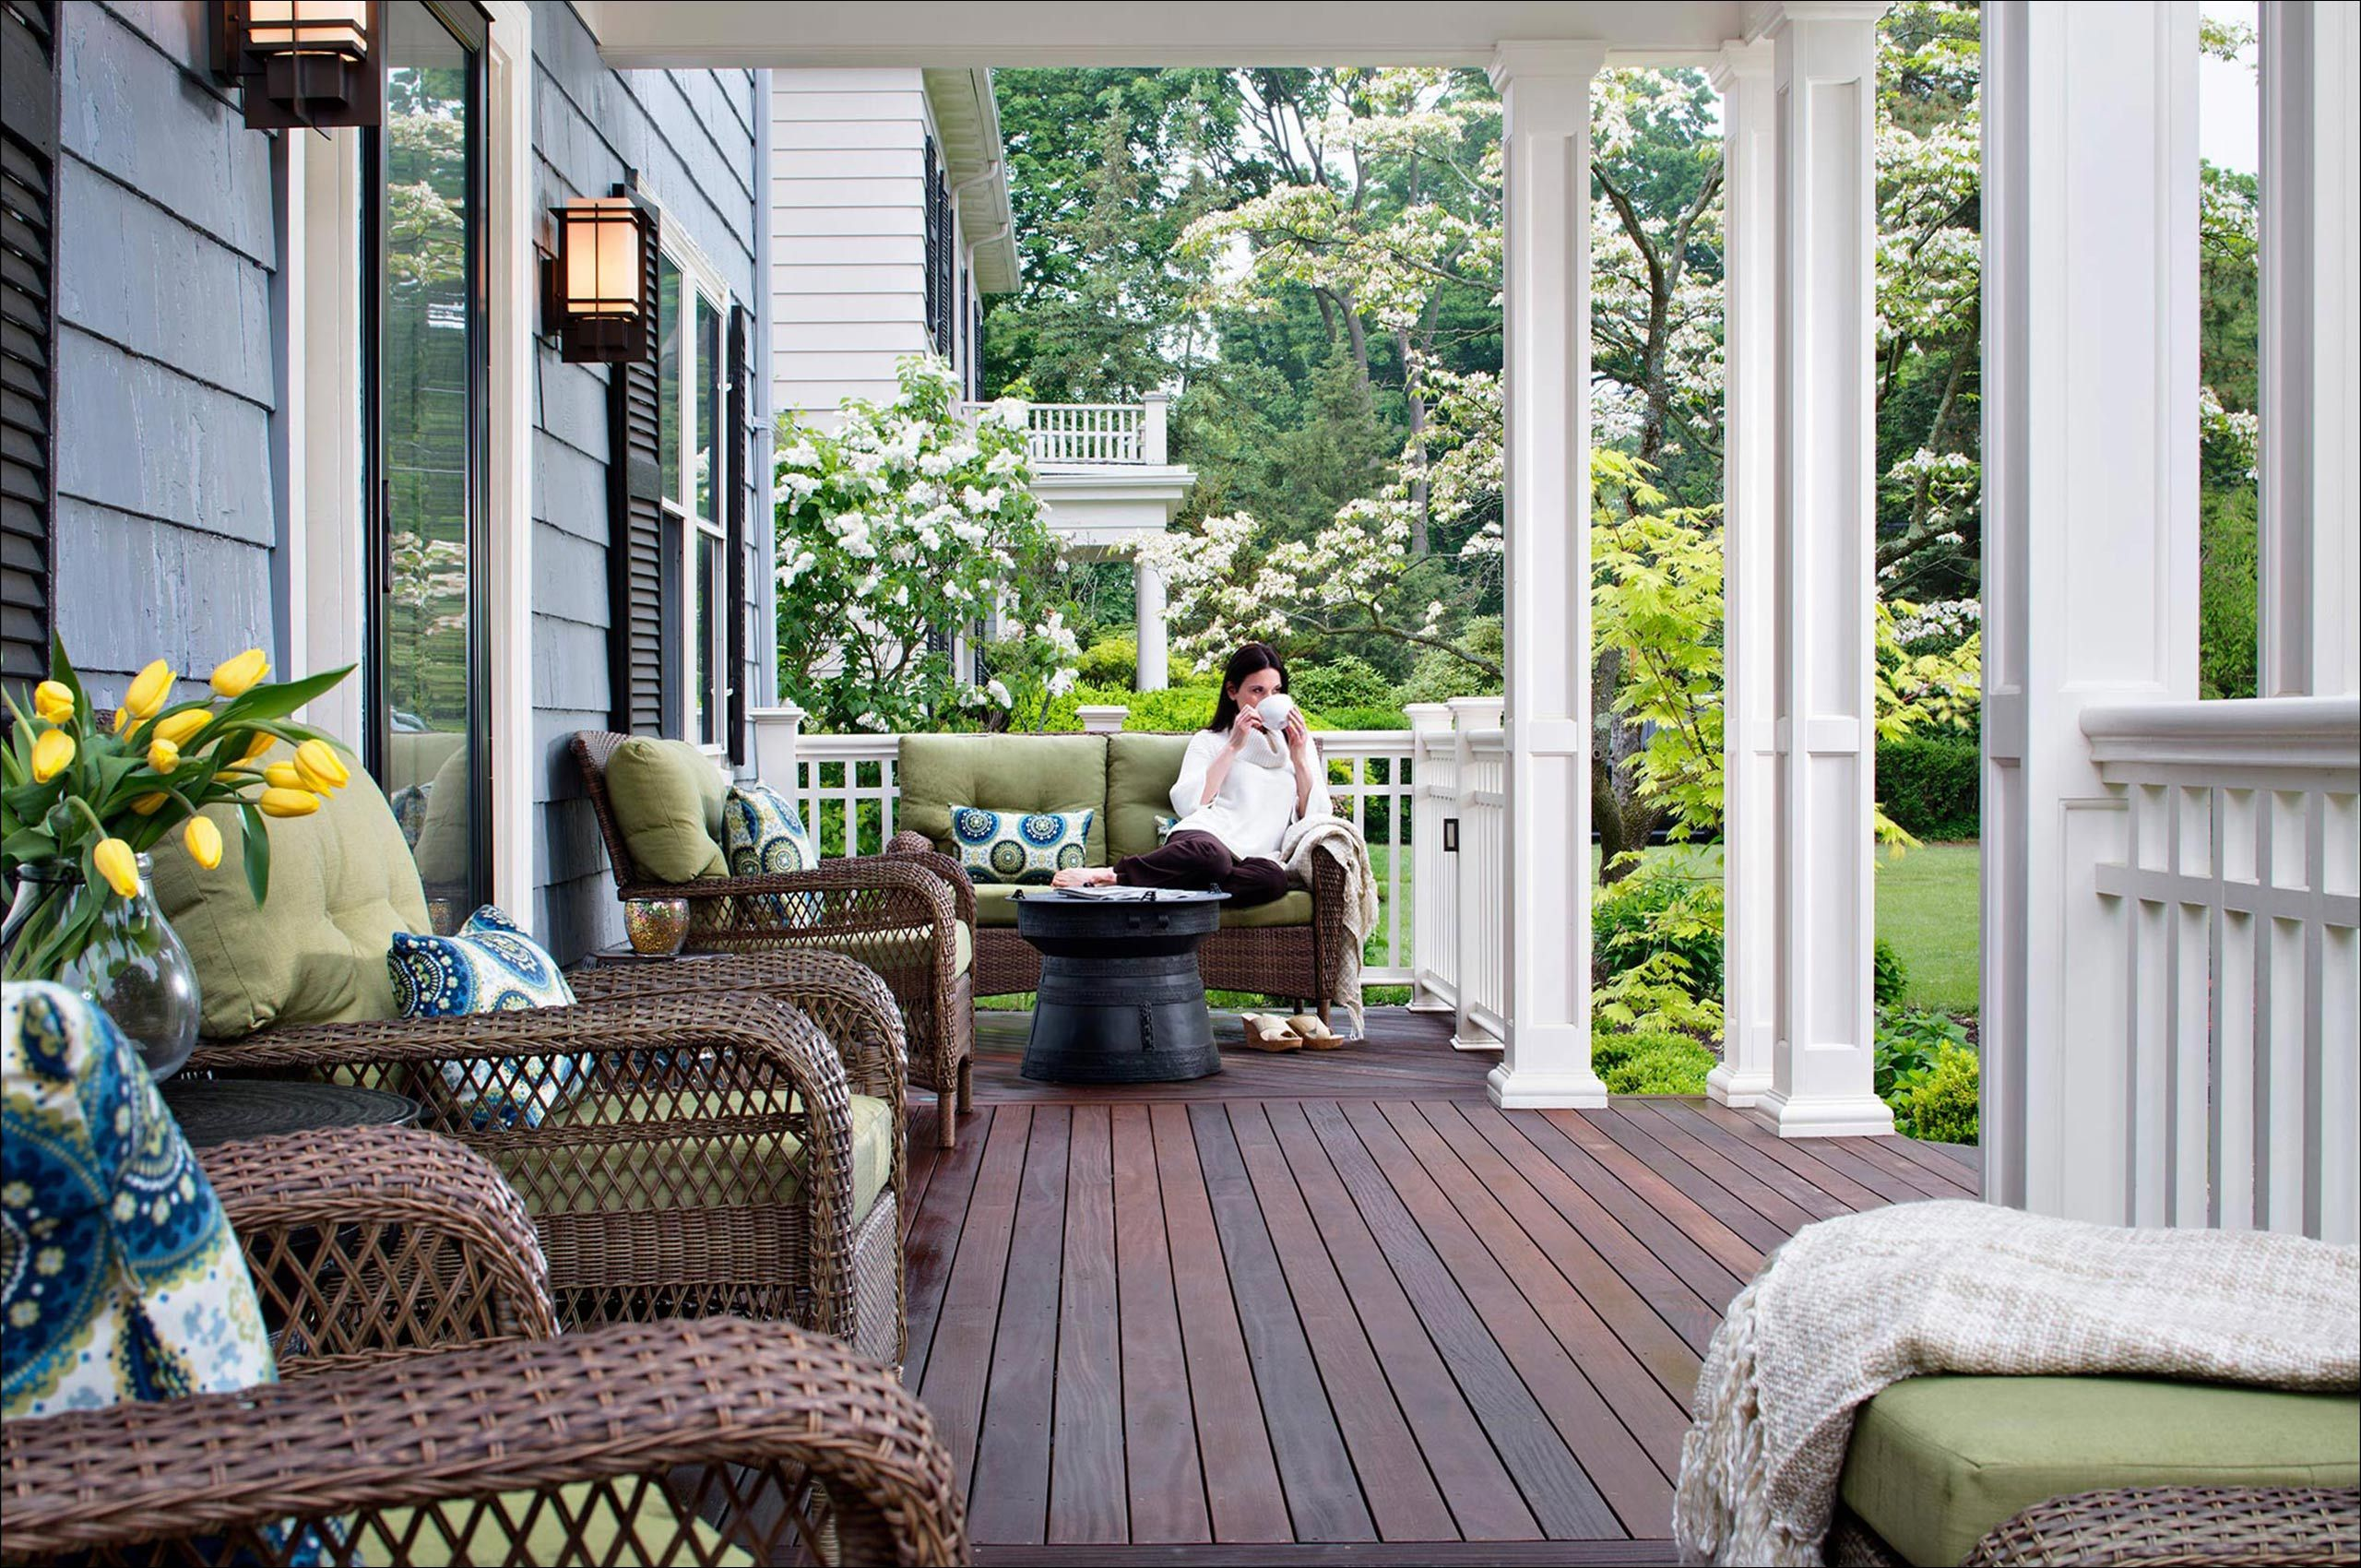 4_Archadeck_OutdoorLivingBrands_Boston_NewEngland_CommercialPhotography.jpg